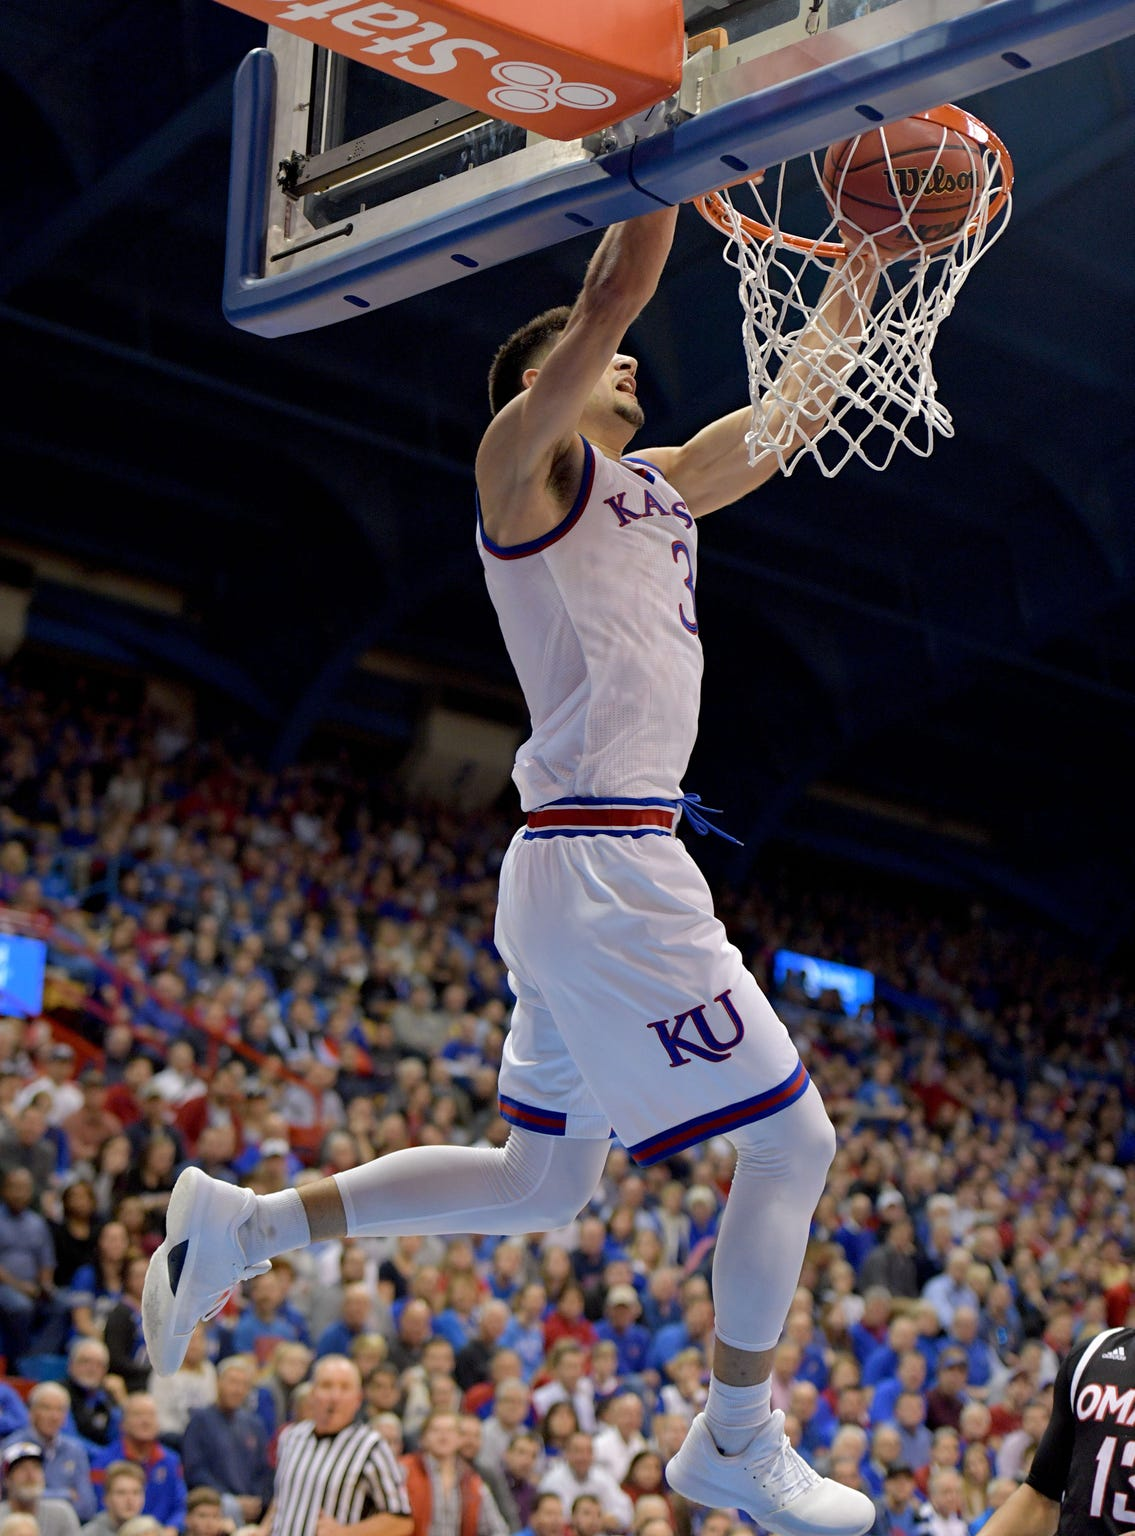 Former Kansas wing Sam Cunliffe will have two seasons of eligibility left beginning in 2019-20.